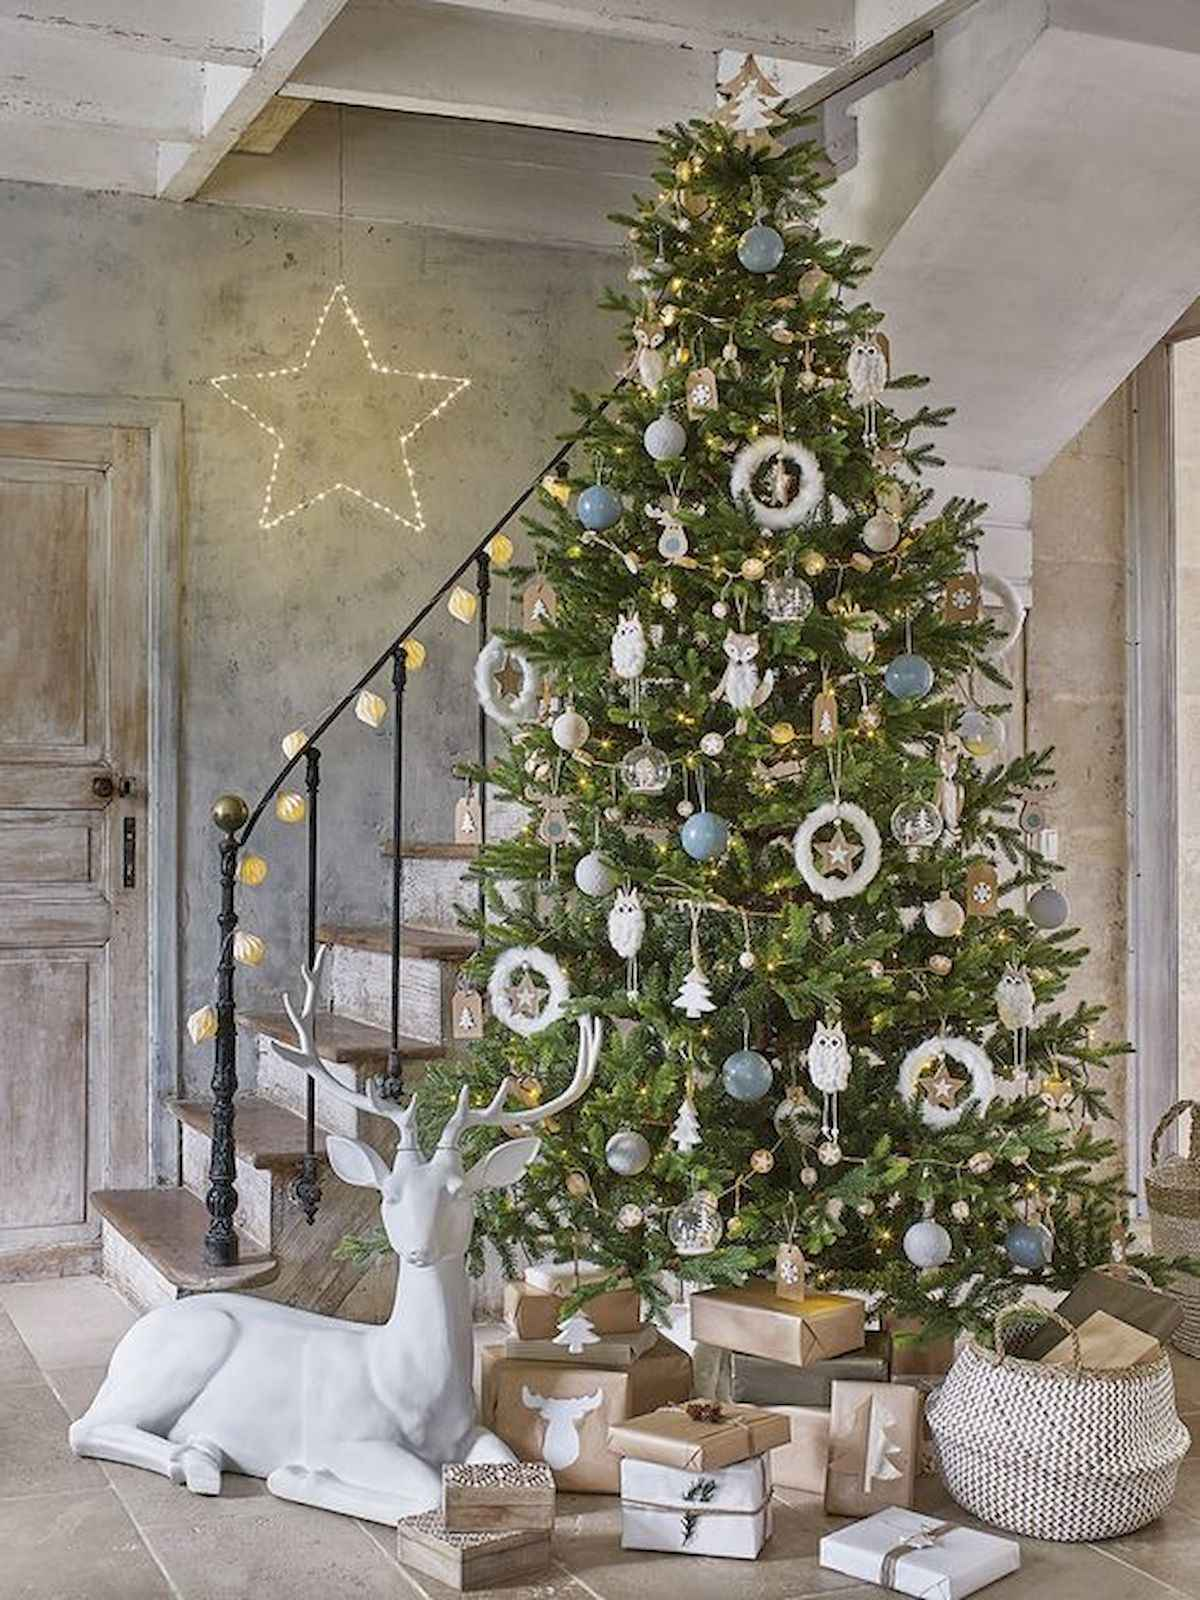 60 awesome christmas tree decorations ideas (15)